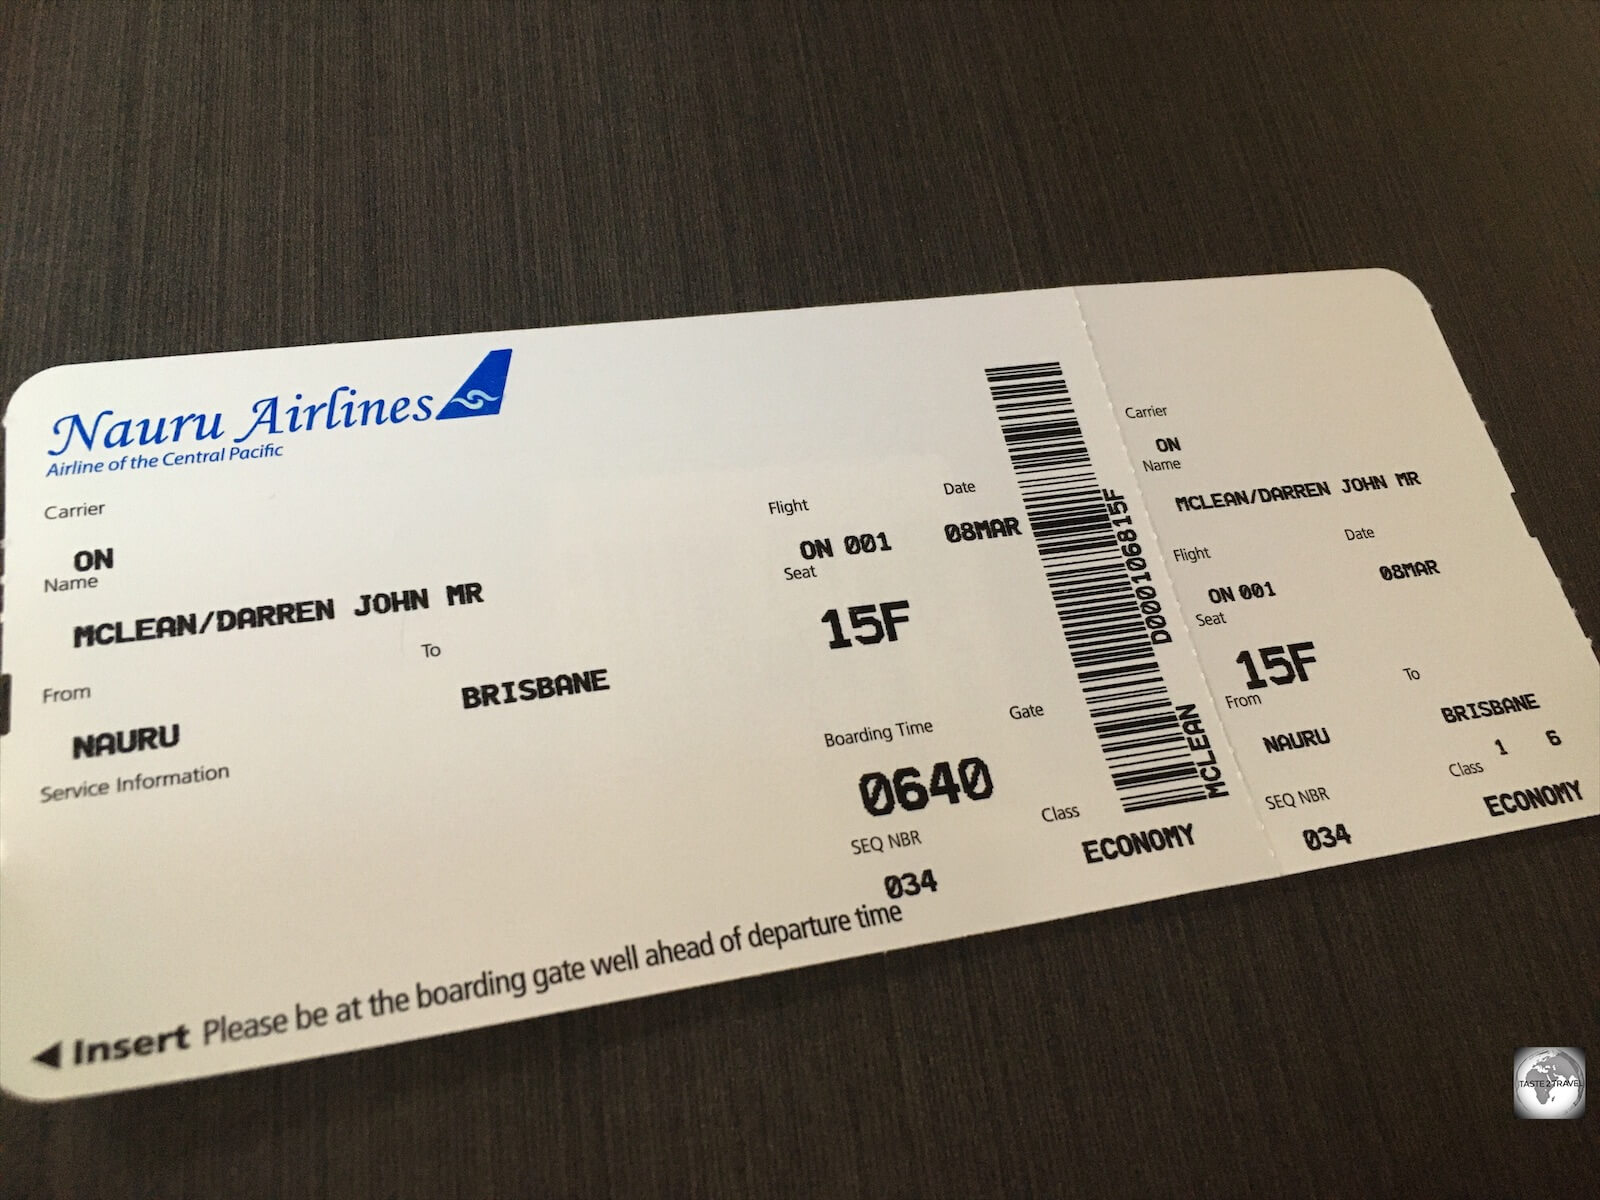 My boarding pass for my flight from Brisbane to Nauru.